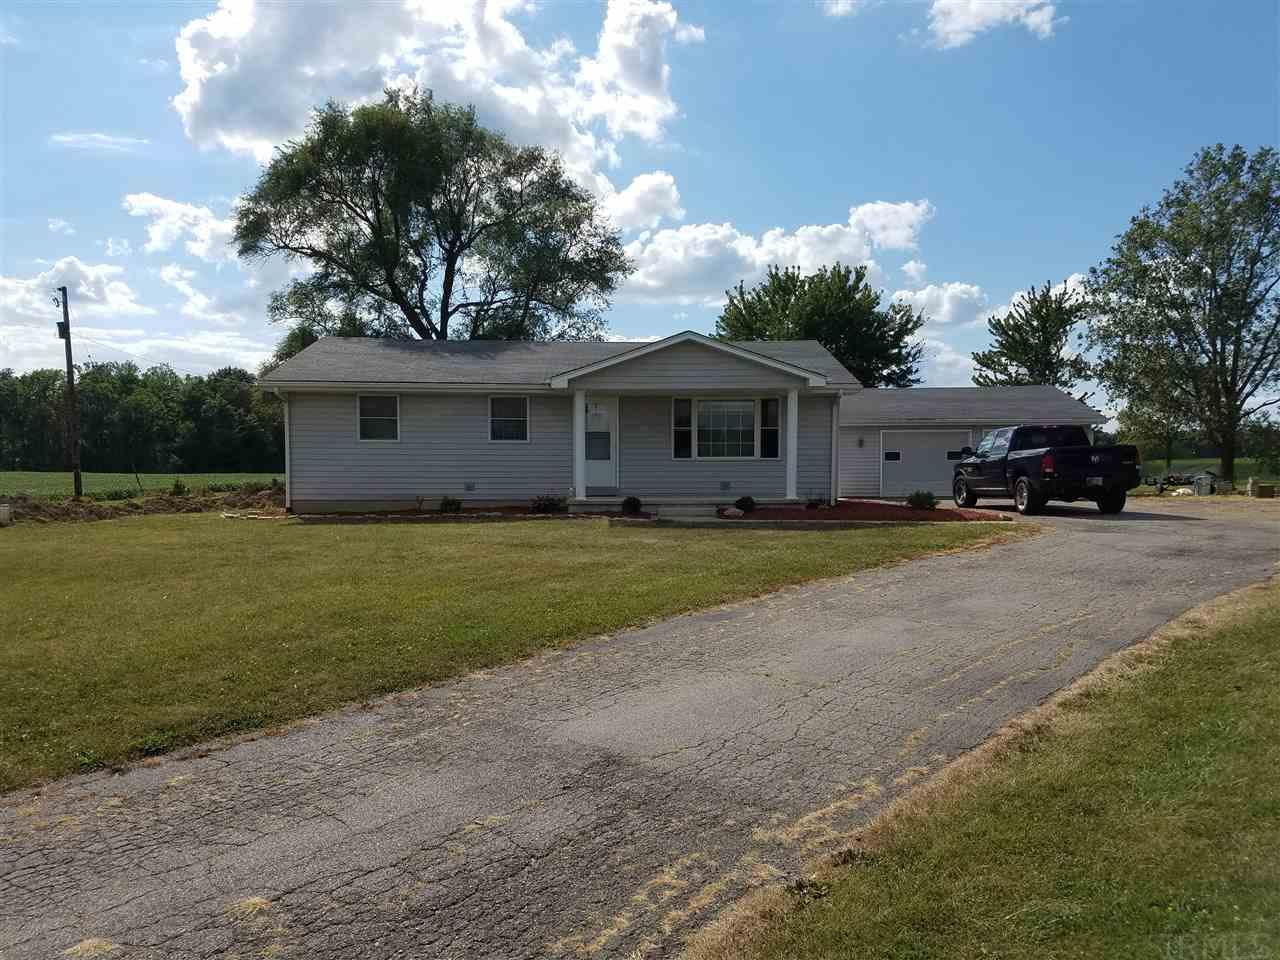 11500 N 200 W, Decatur, IN 46733